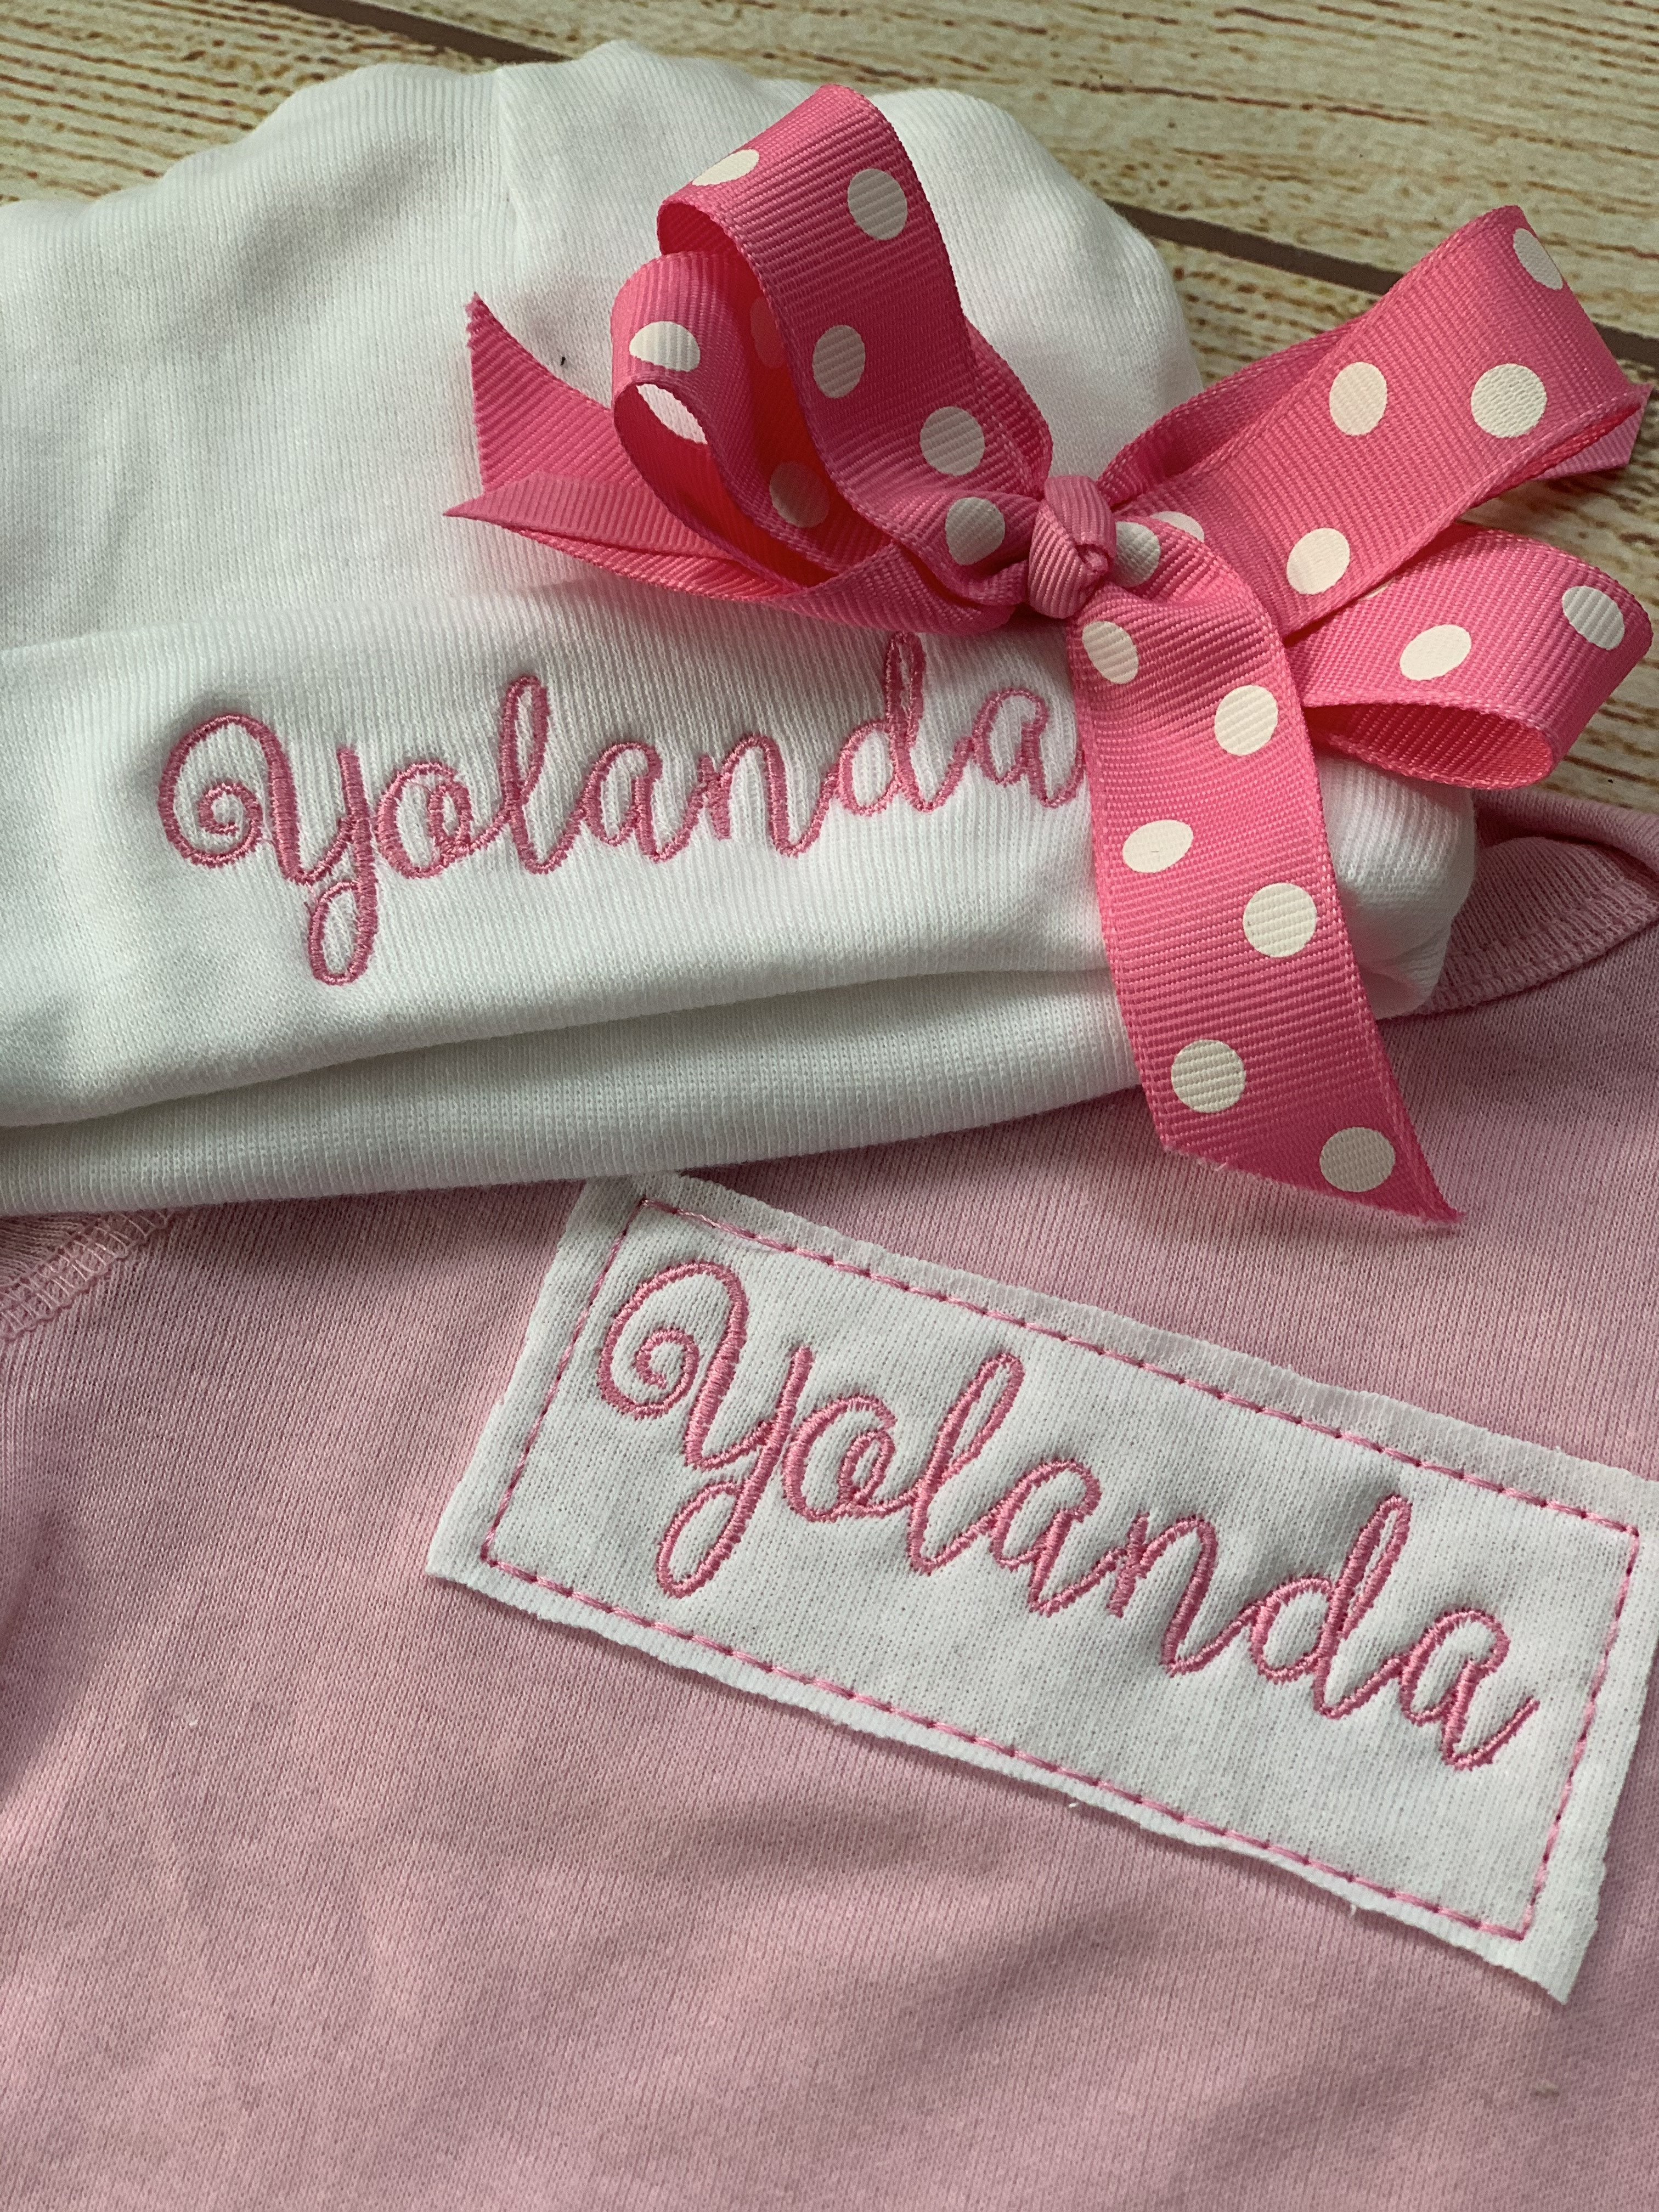 Super duper cute for the new baby girl!  Wicked Stitches Gifts